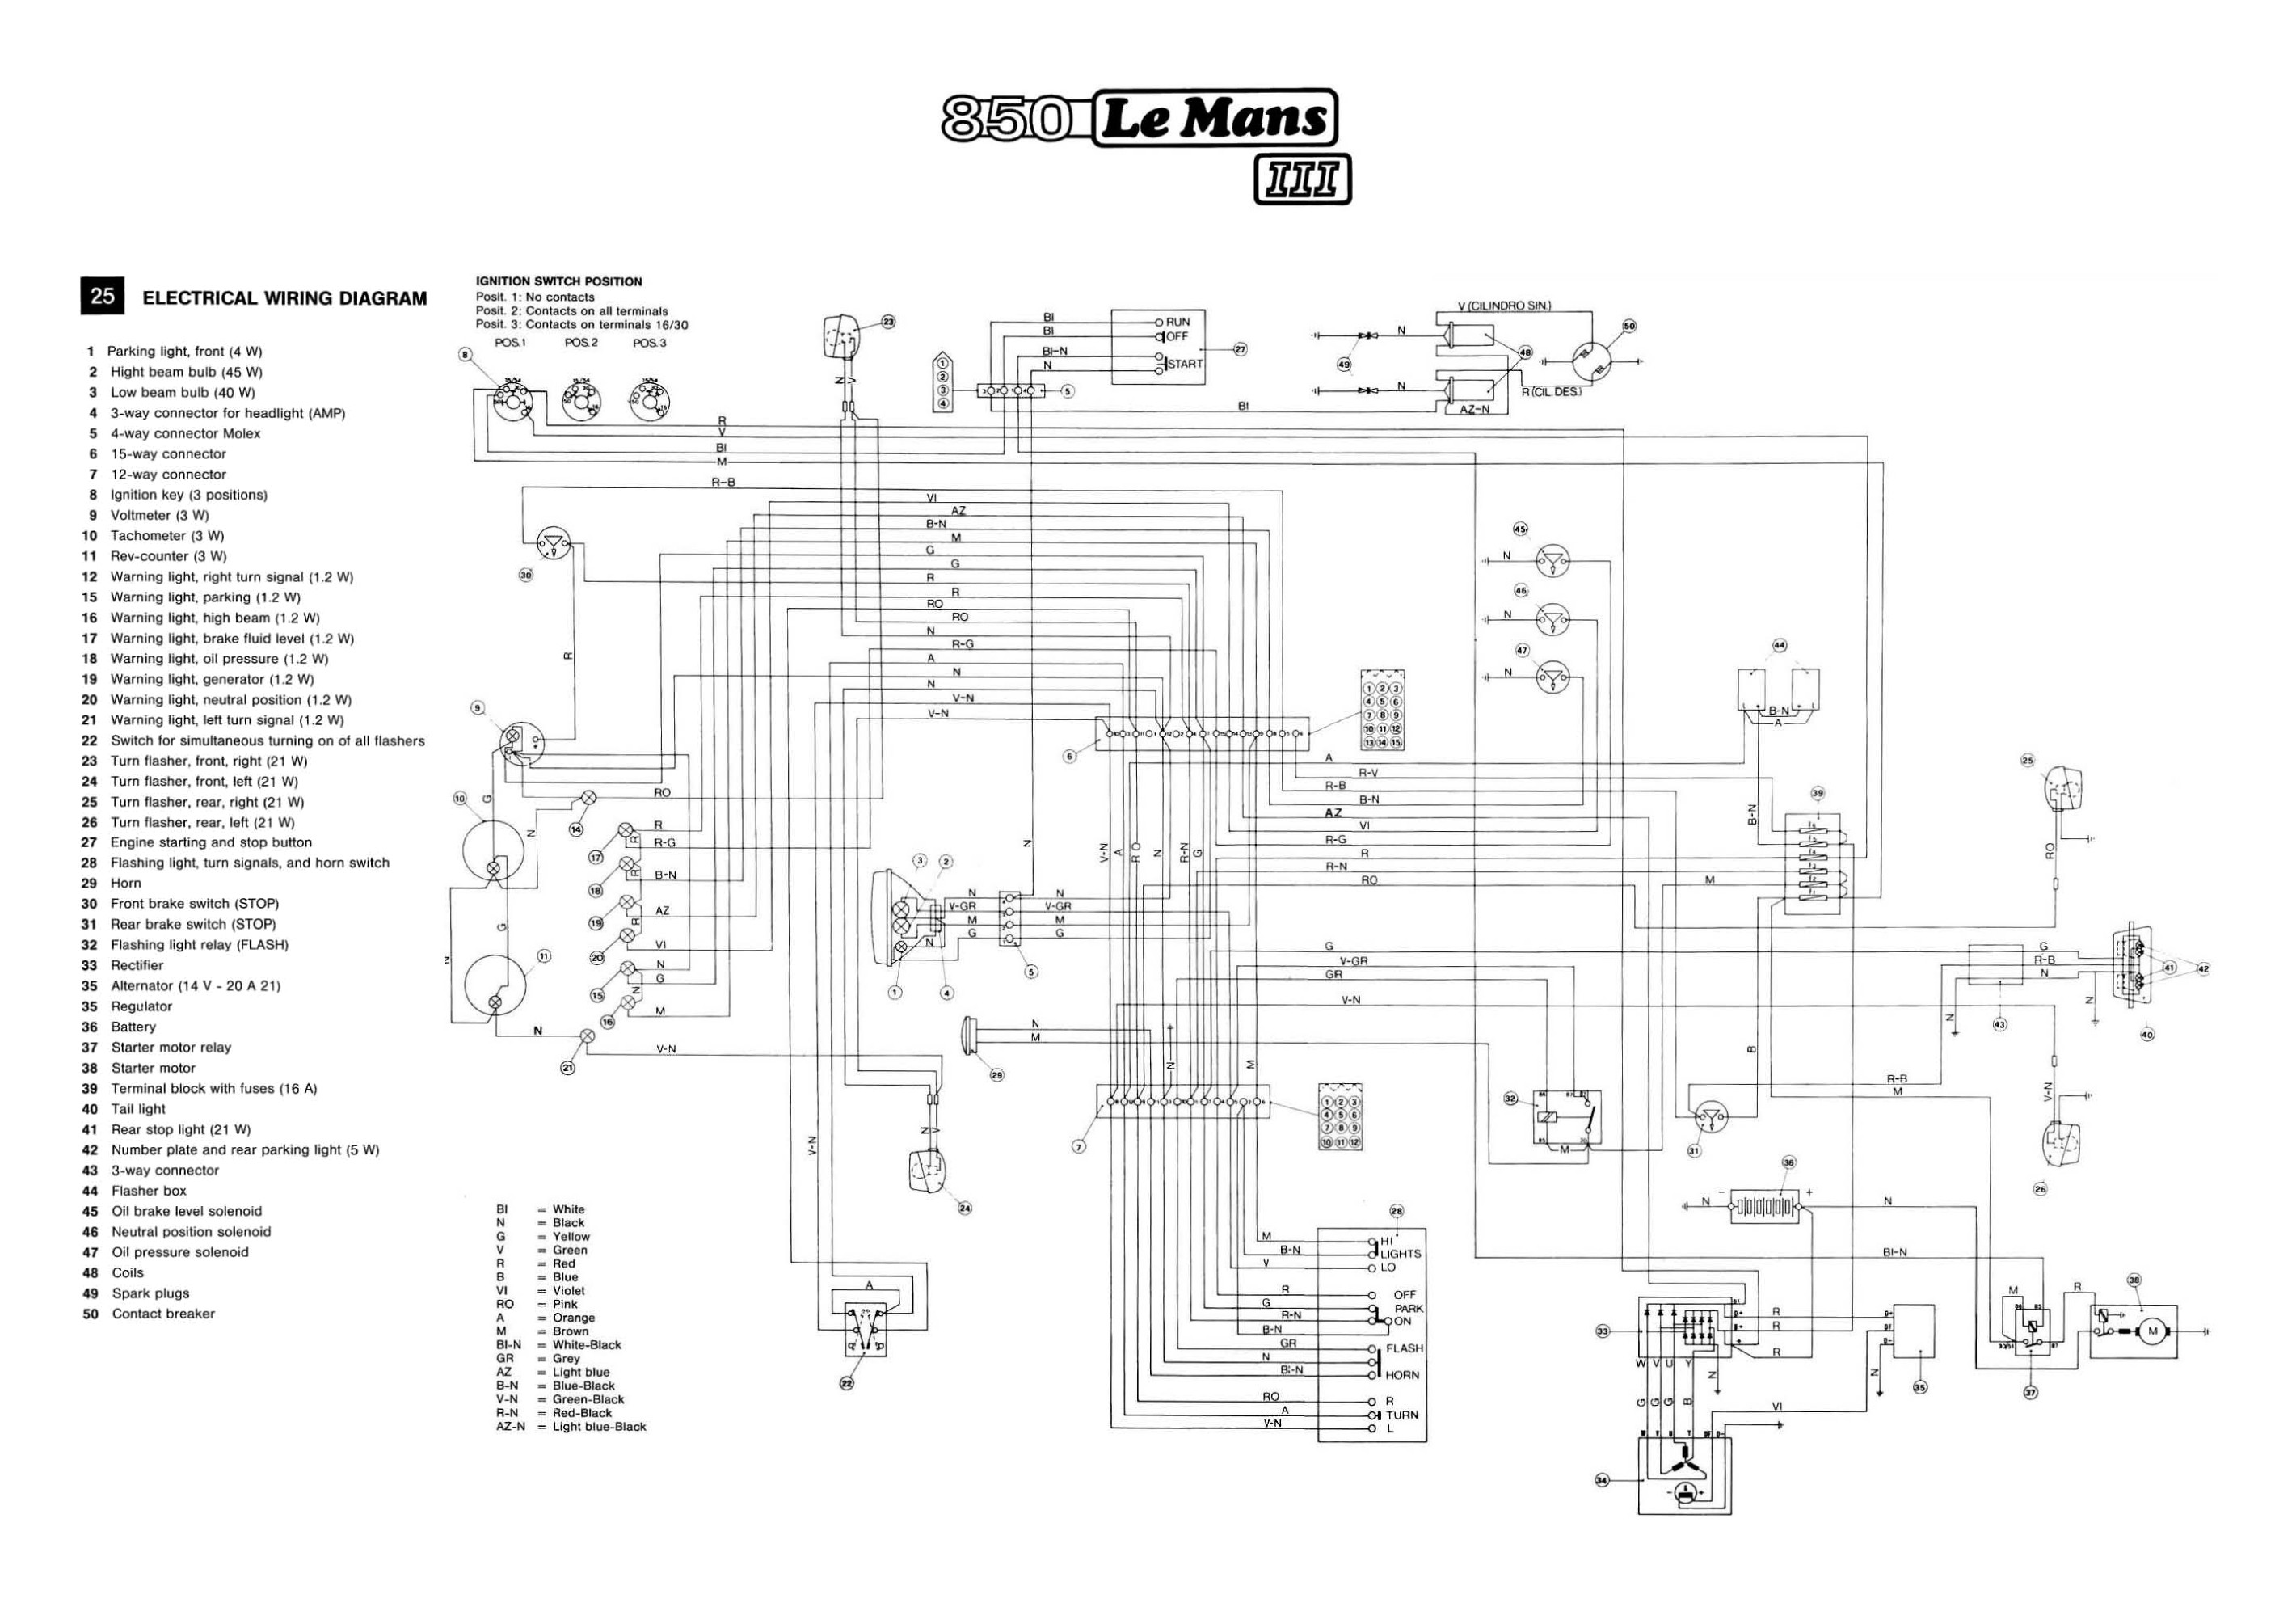 Gentex 313 Wiring Diagram Awesome Wiring Diagram Image